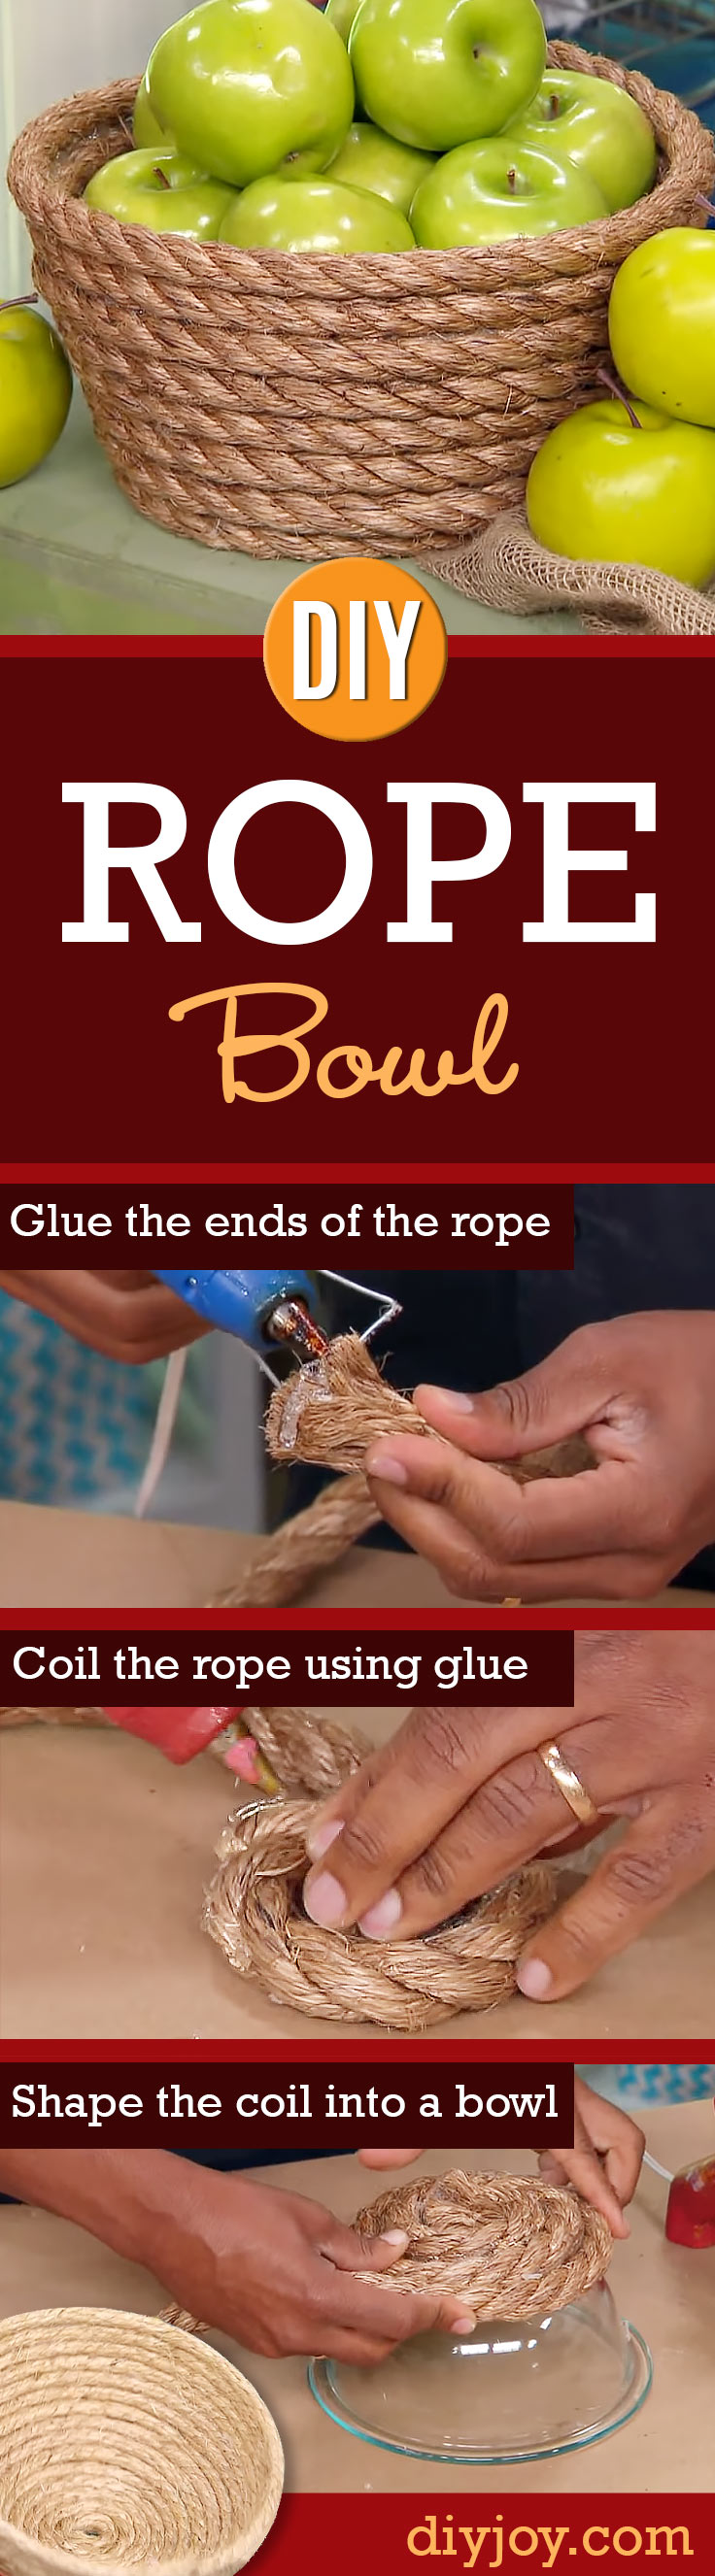 Easy Home Decor Projects and Cheap DIY Crafts Ideas that Make Cool Homemade Gifts - DIY Rope Bowl - How To and Step By Step Instructions - Cheap Crafts to Sell Online for Cash